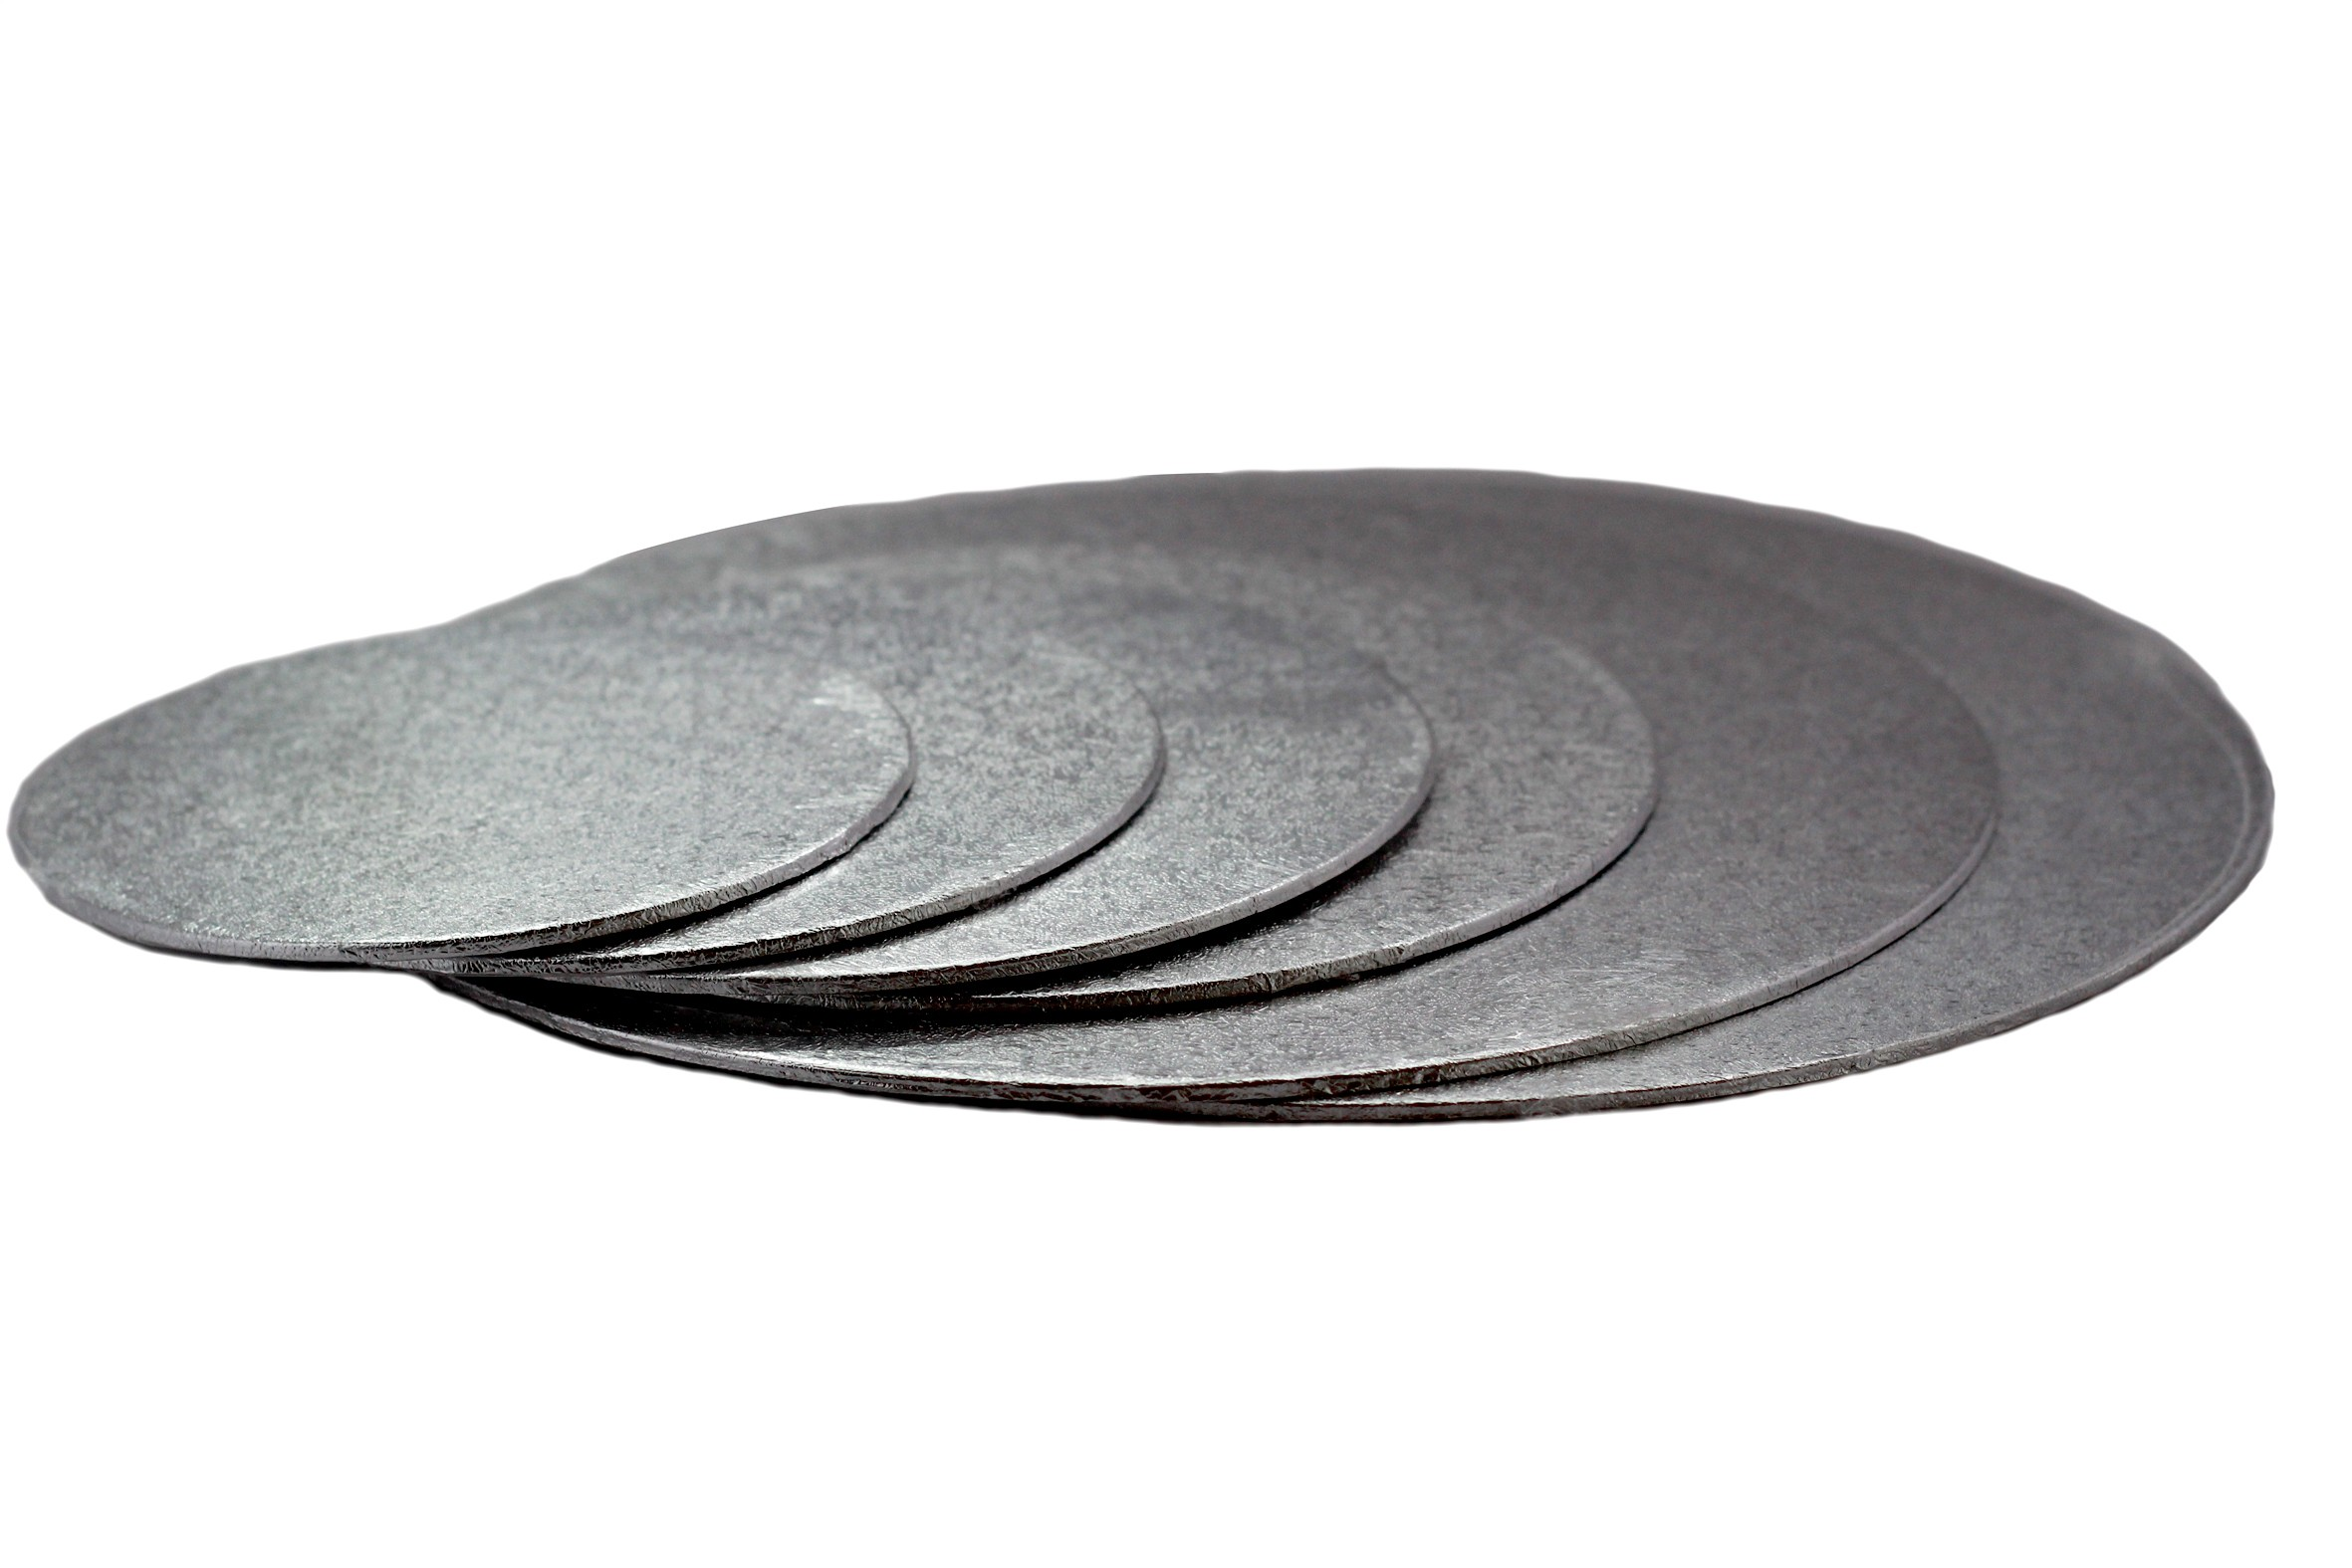 Thin round sole 10.62 in. for cakes